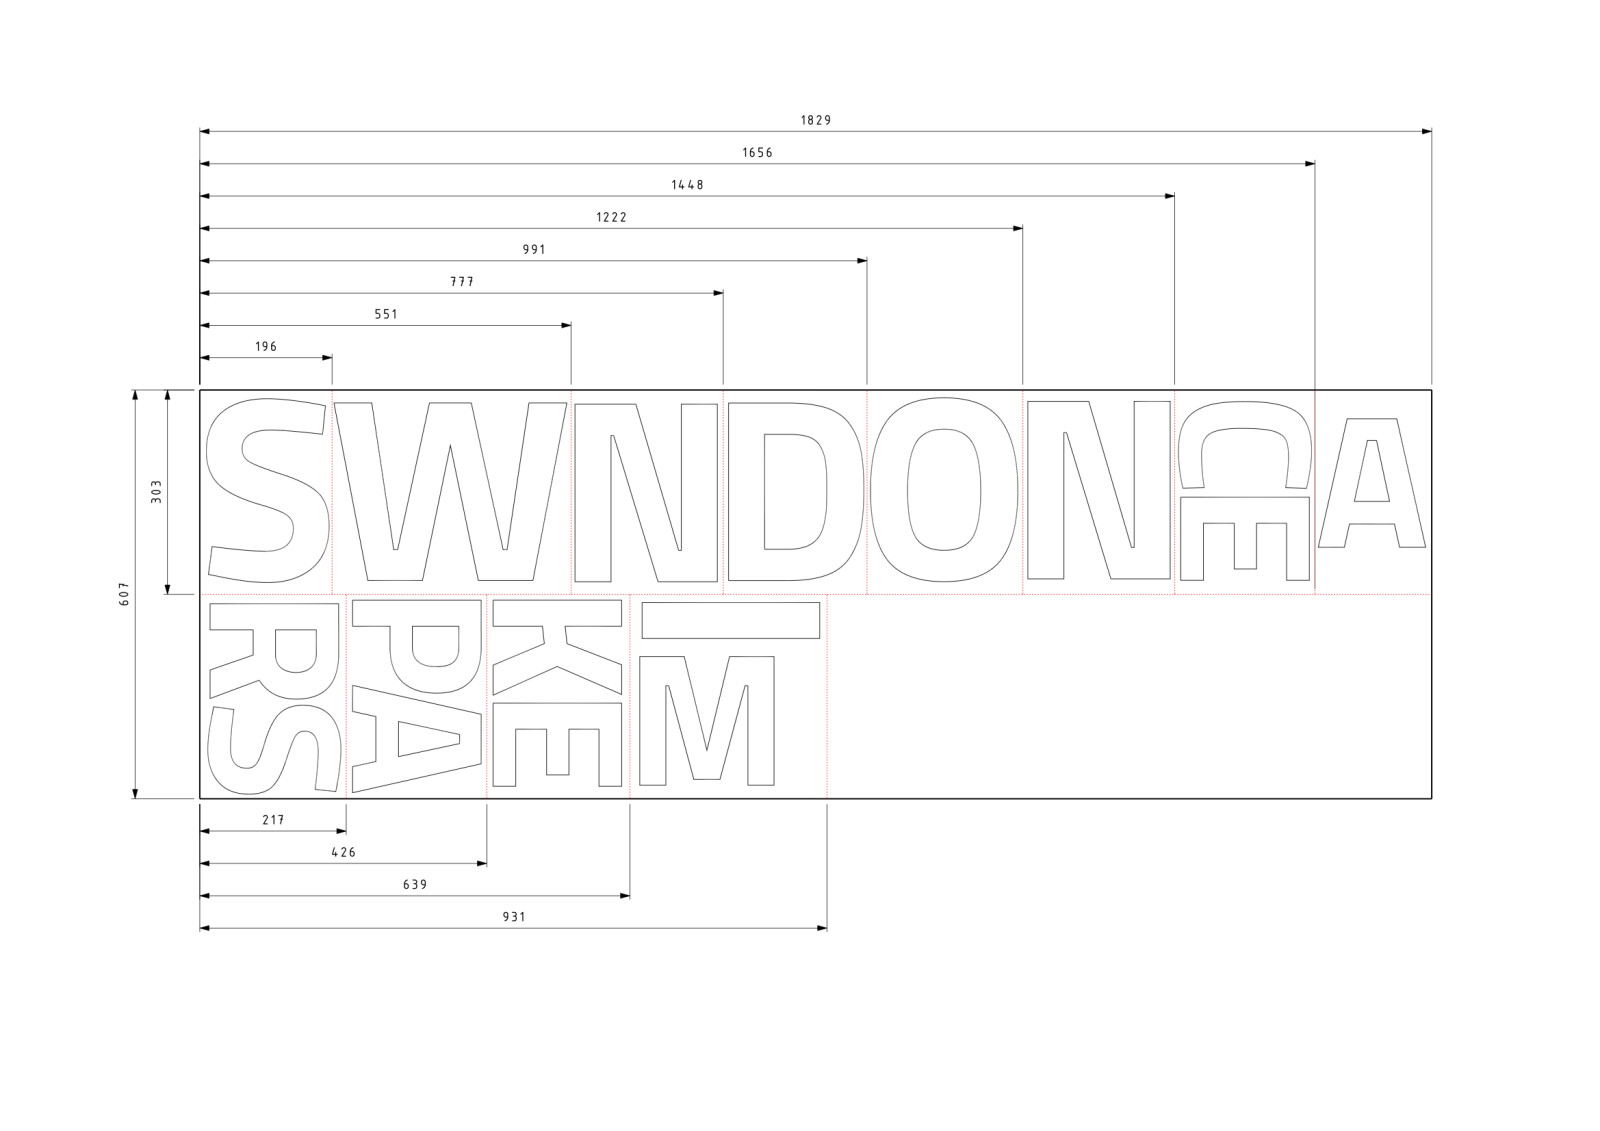 Swindon Makerspace Sign Cutting Layout - Dims